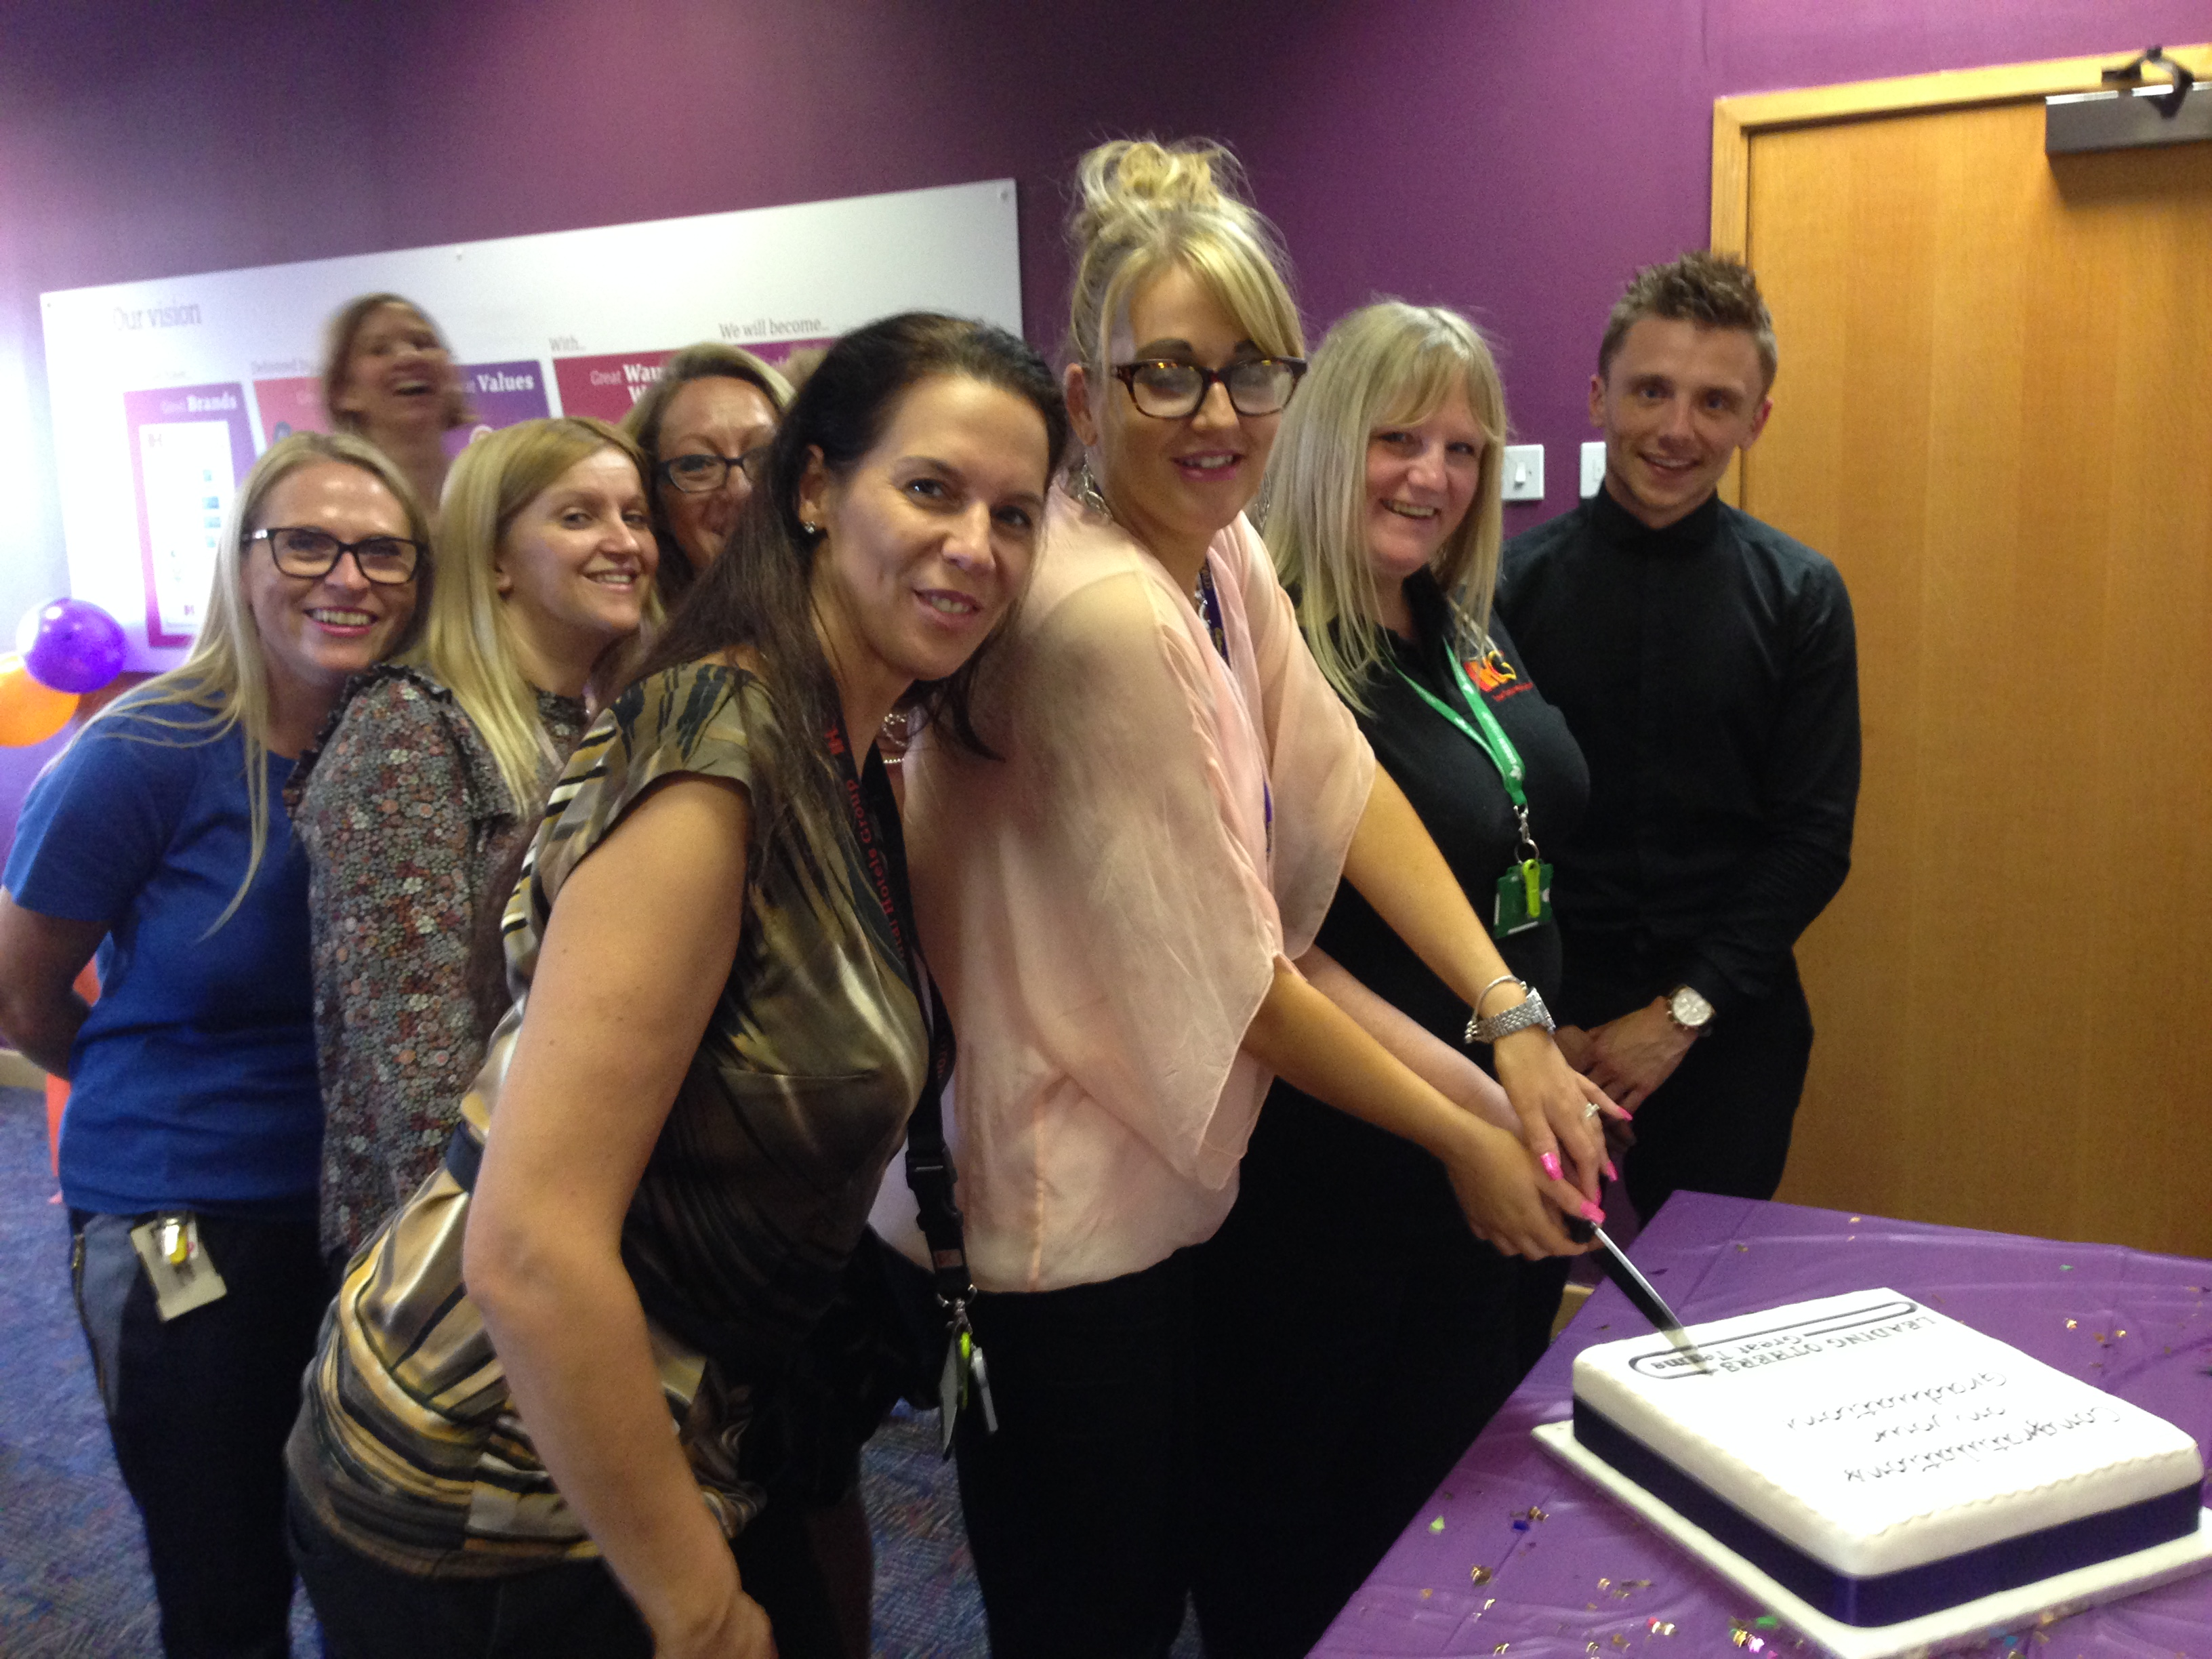 UK Central Reservation Office cutting cake